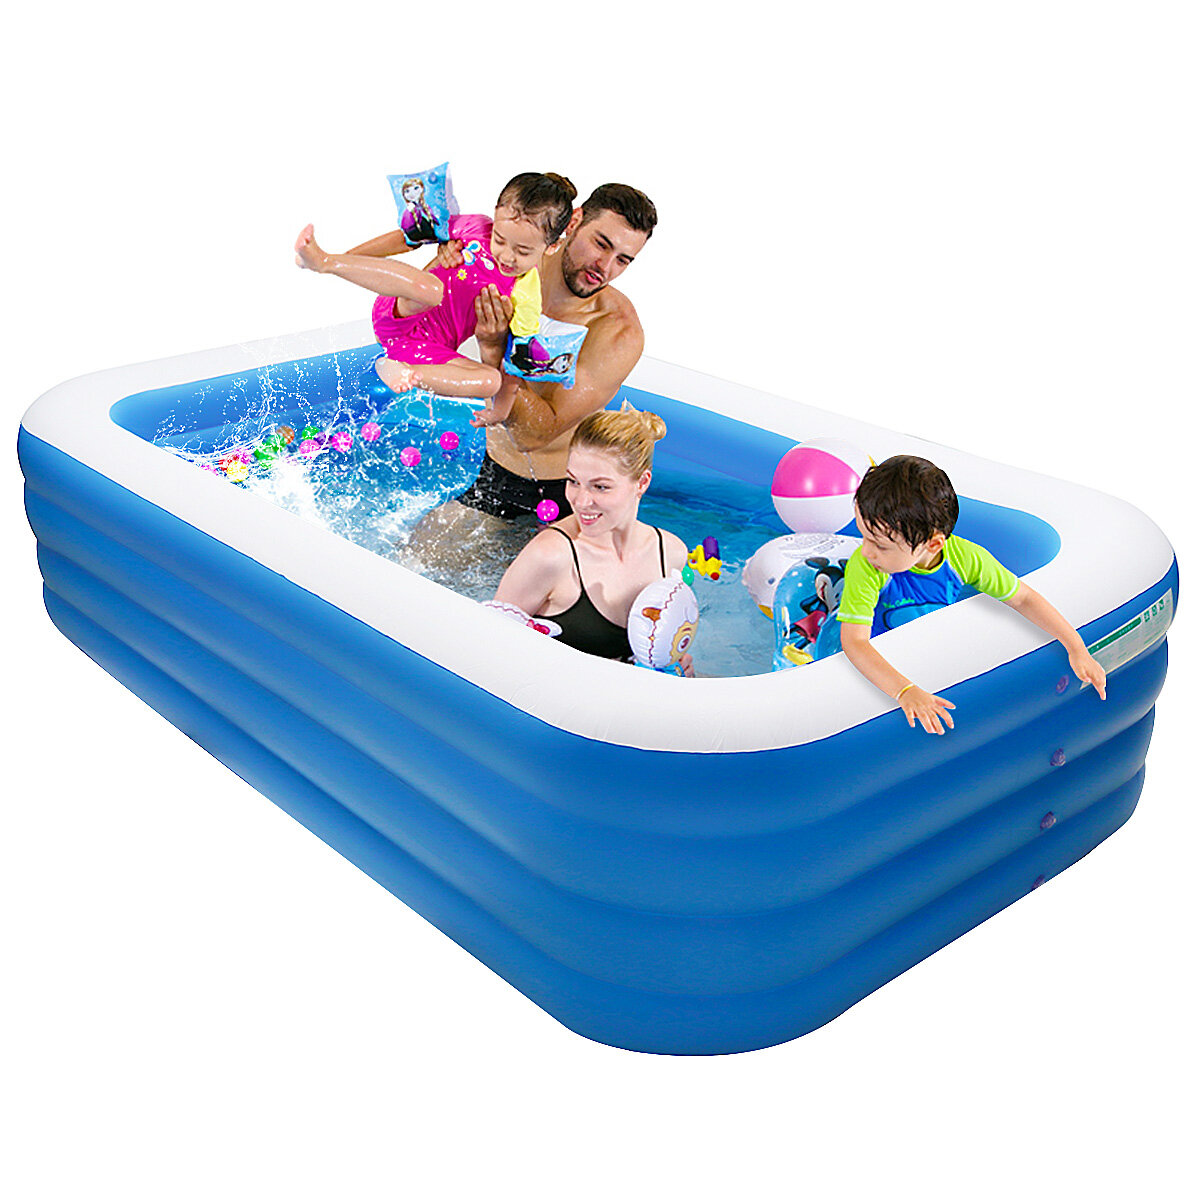 IPRee® 305*185*72cm Inflatable Swimming Pool Outdoor Garden Swimming Pool Portable Inflatable Pool